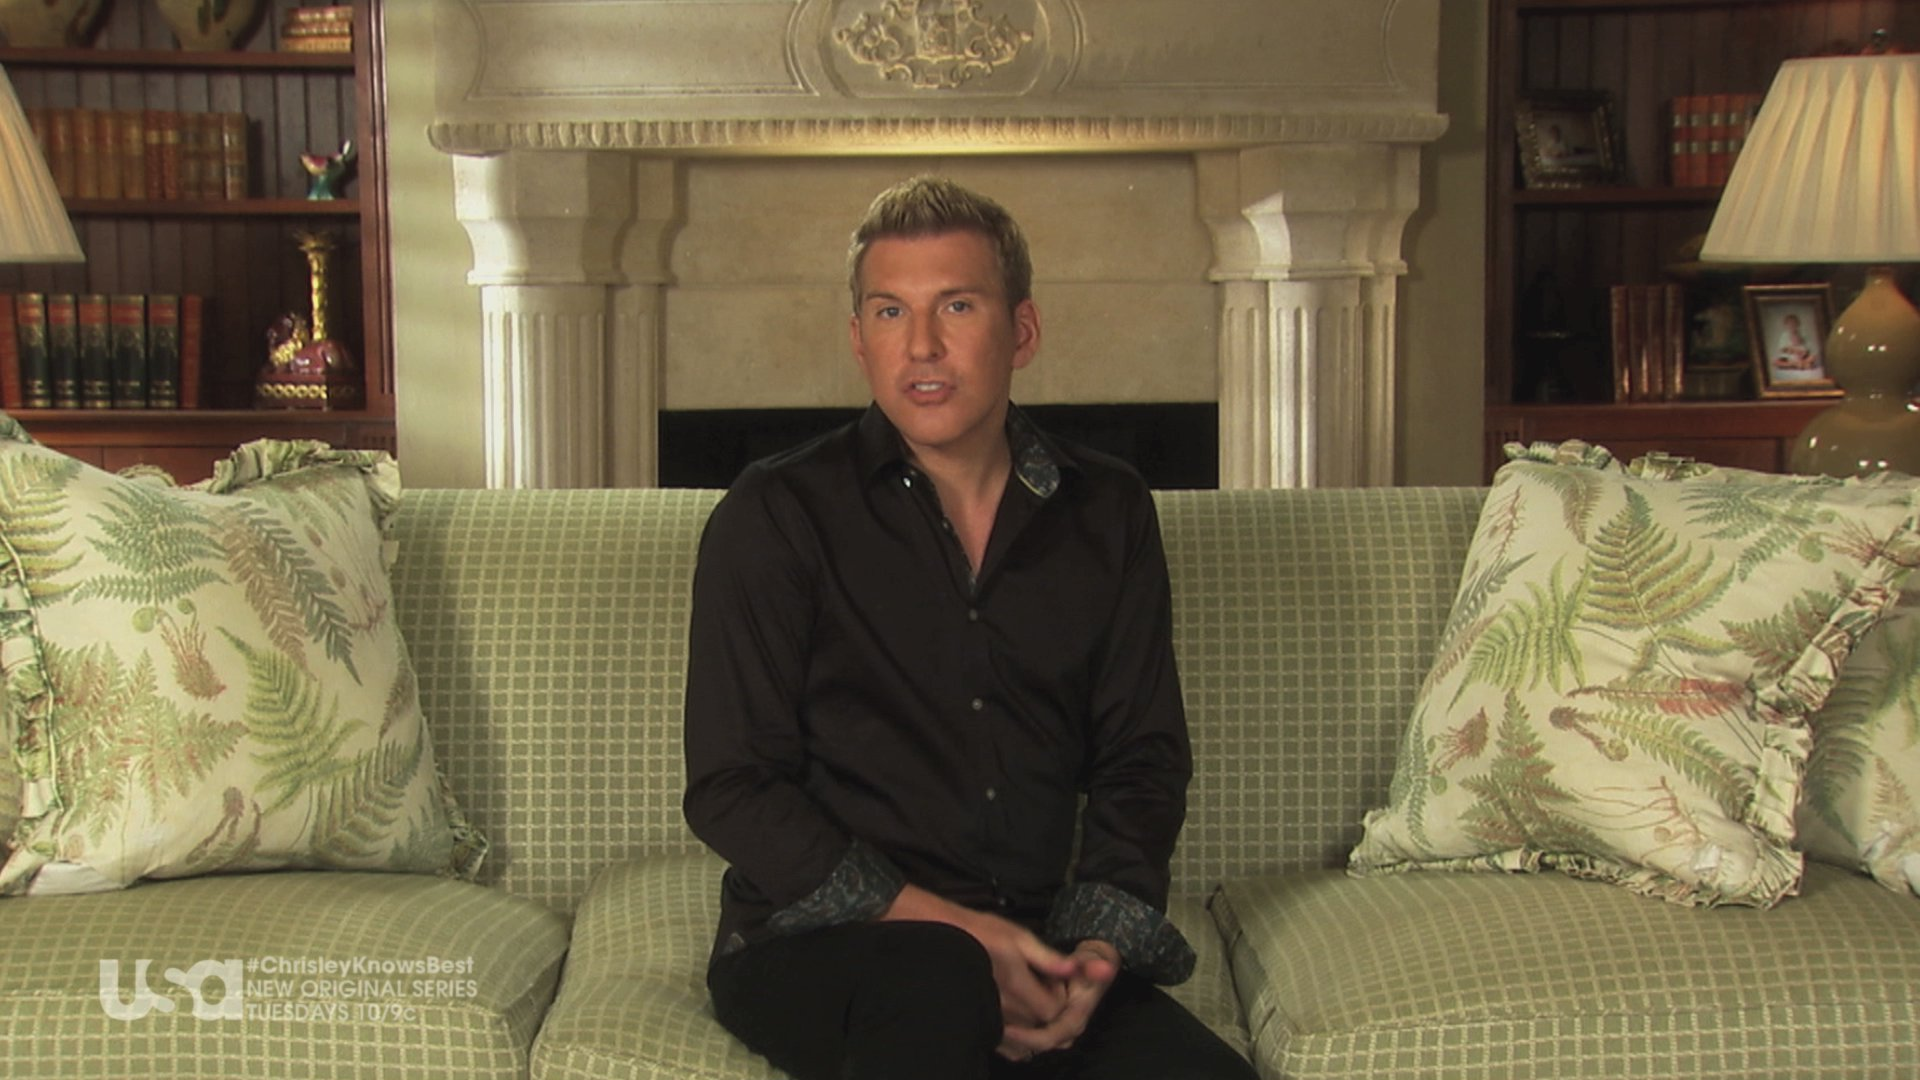 Todd Chrisley News, Todd Chrisley Bio and Photos | TVGuide.com